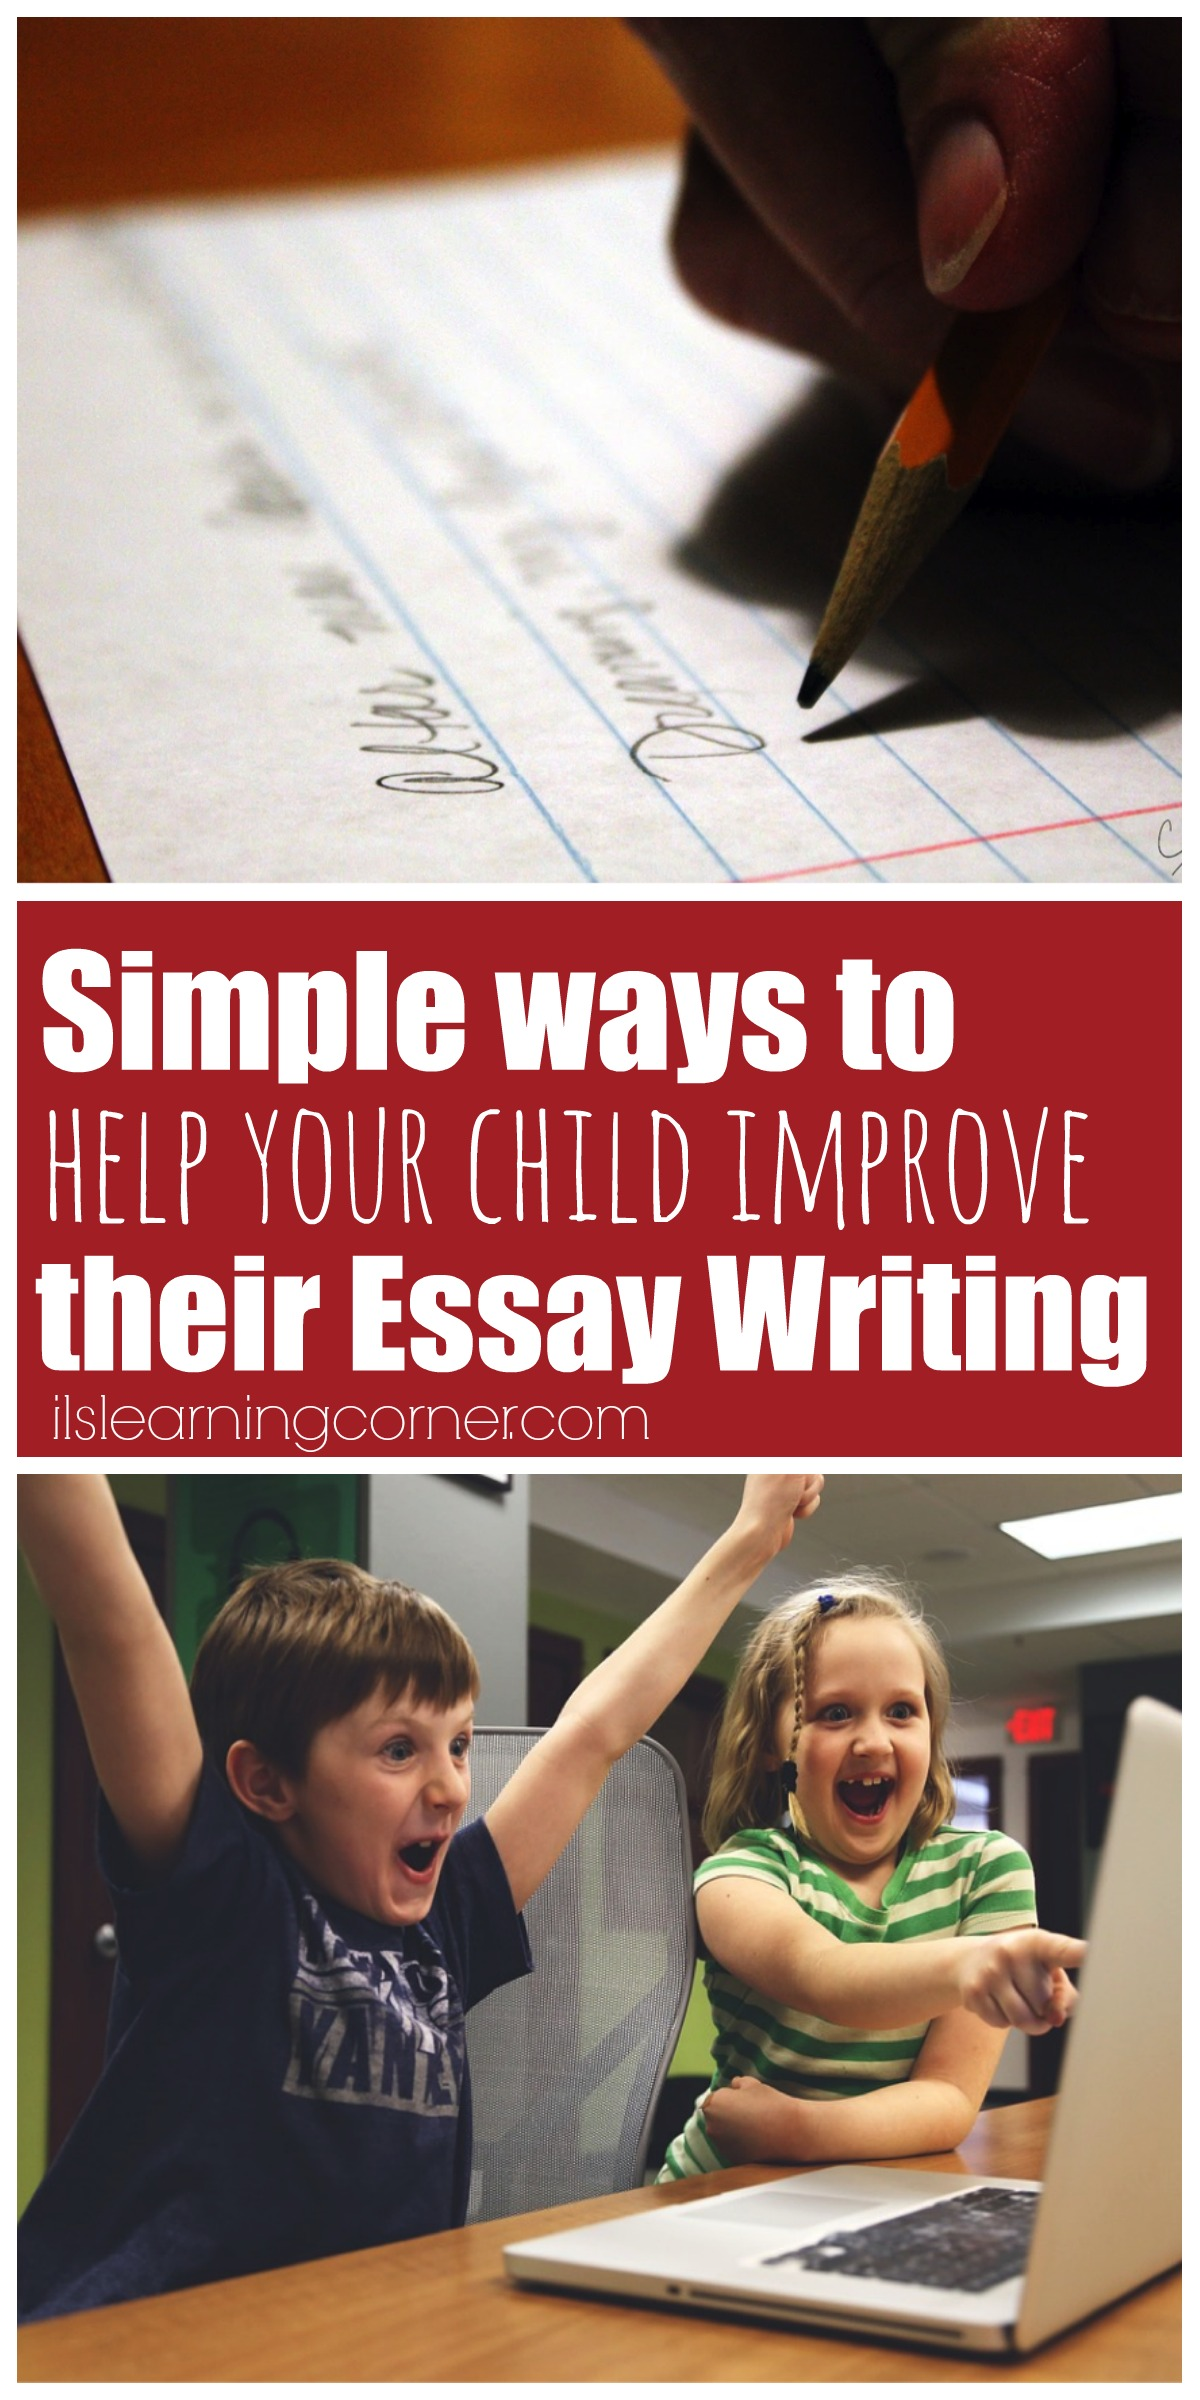 Writing essay your child